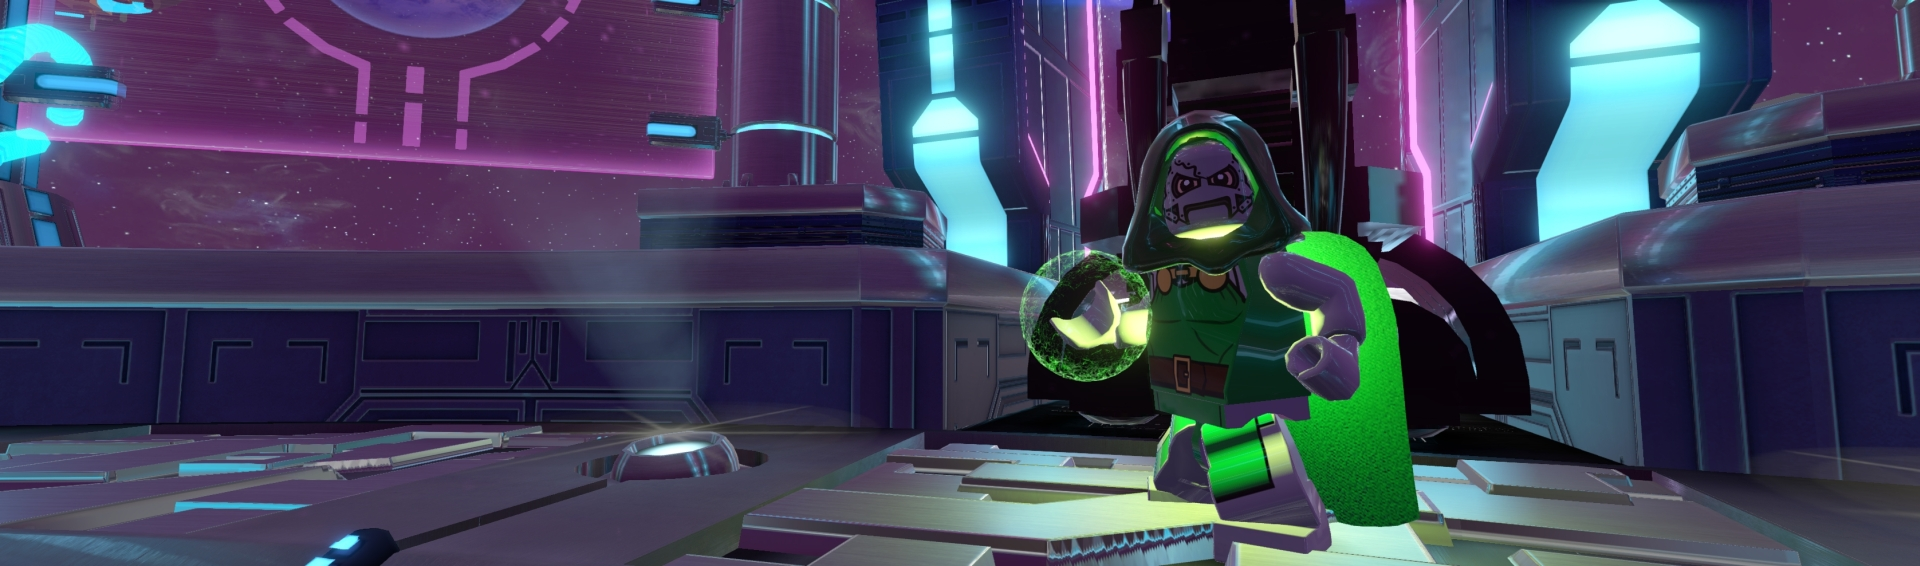 lego-marvel-super-heroes-02